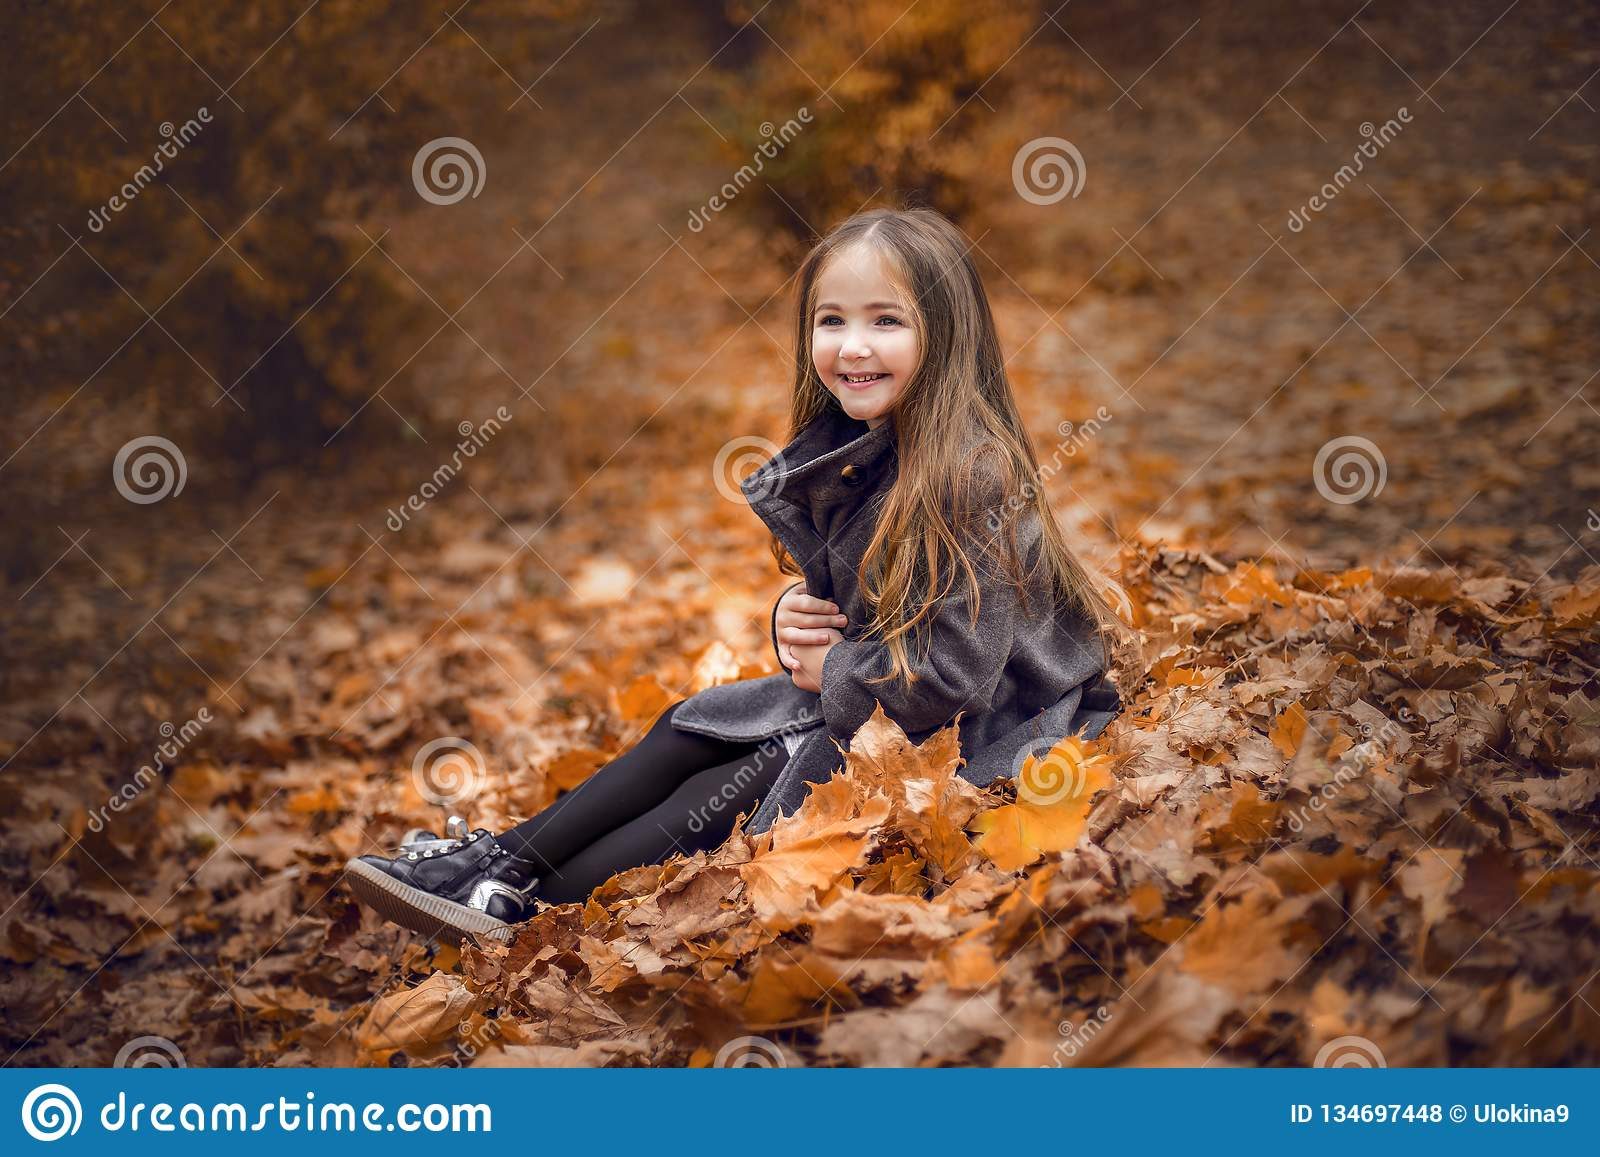 Happy beautiful girl in the autumn leaves.